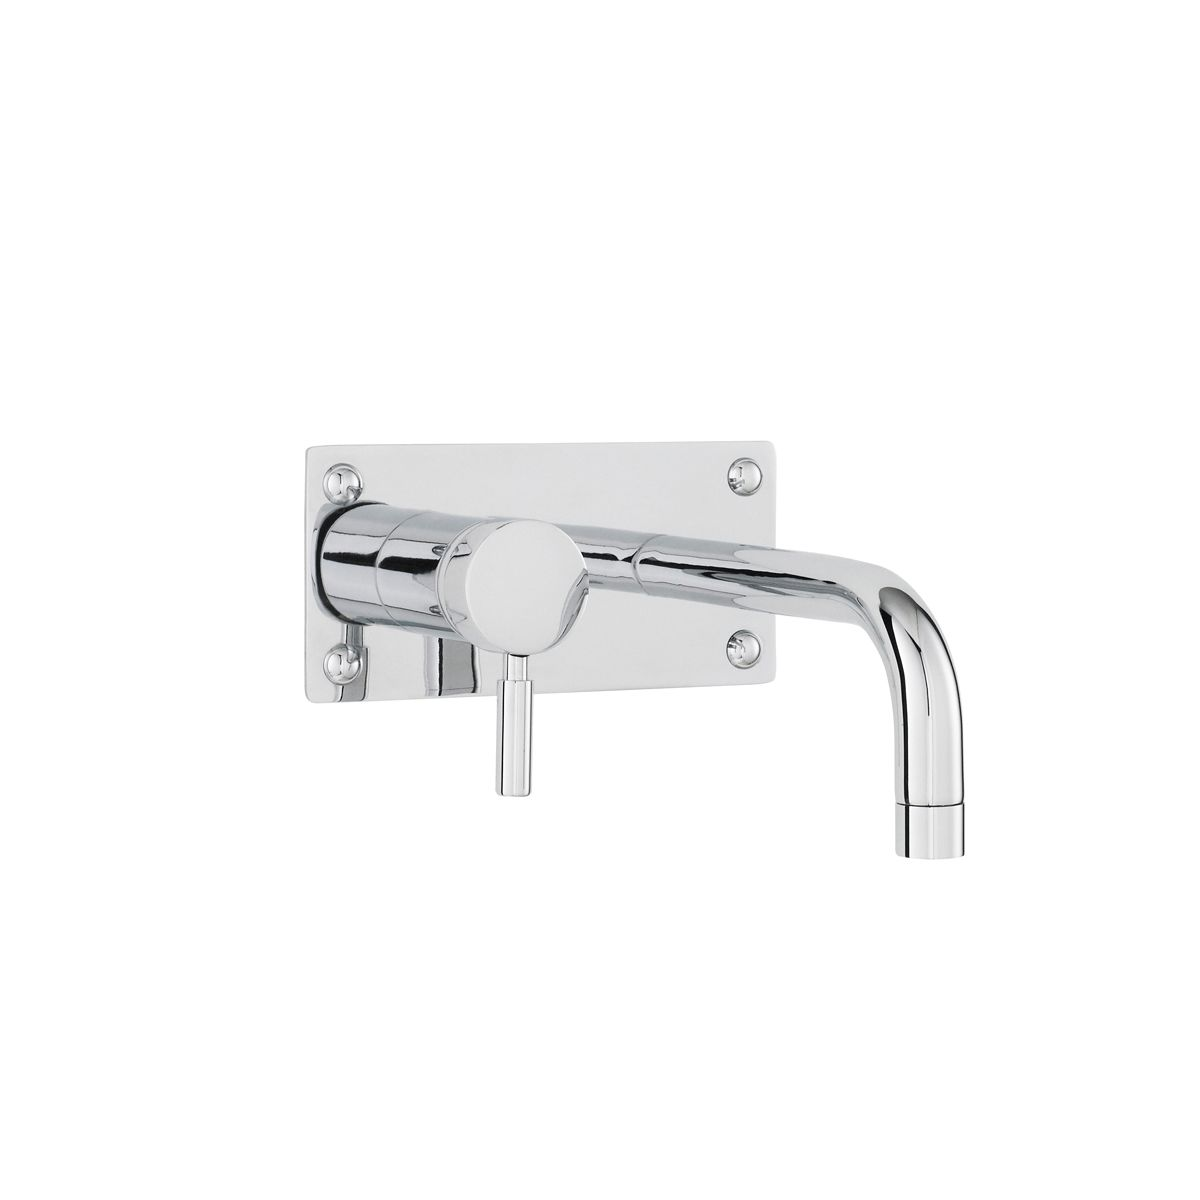 Hudson Reed Tec Single Lever Wall Mounted Basin Bath Filler Tap